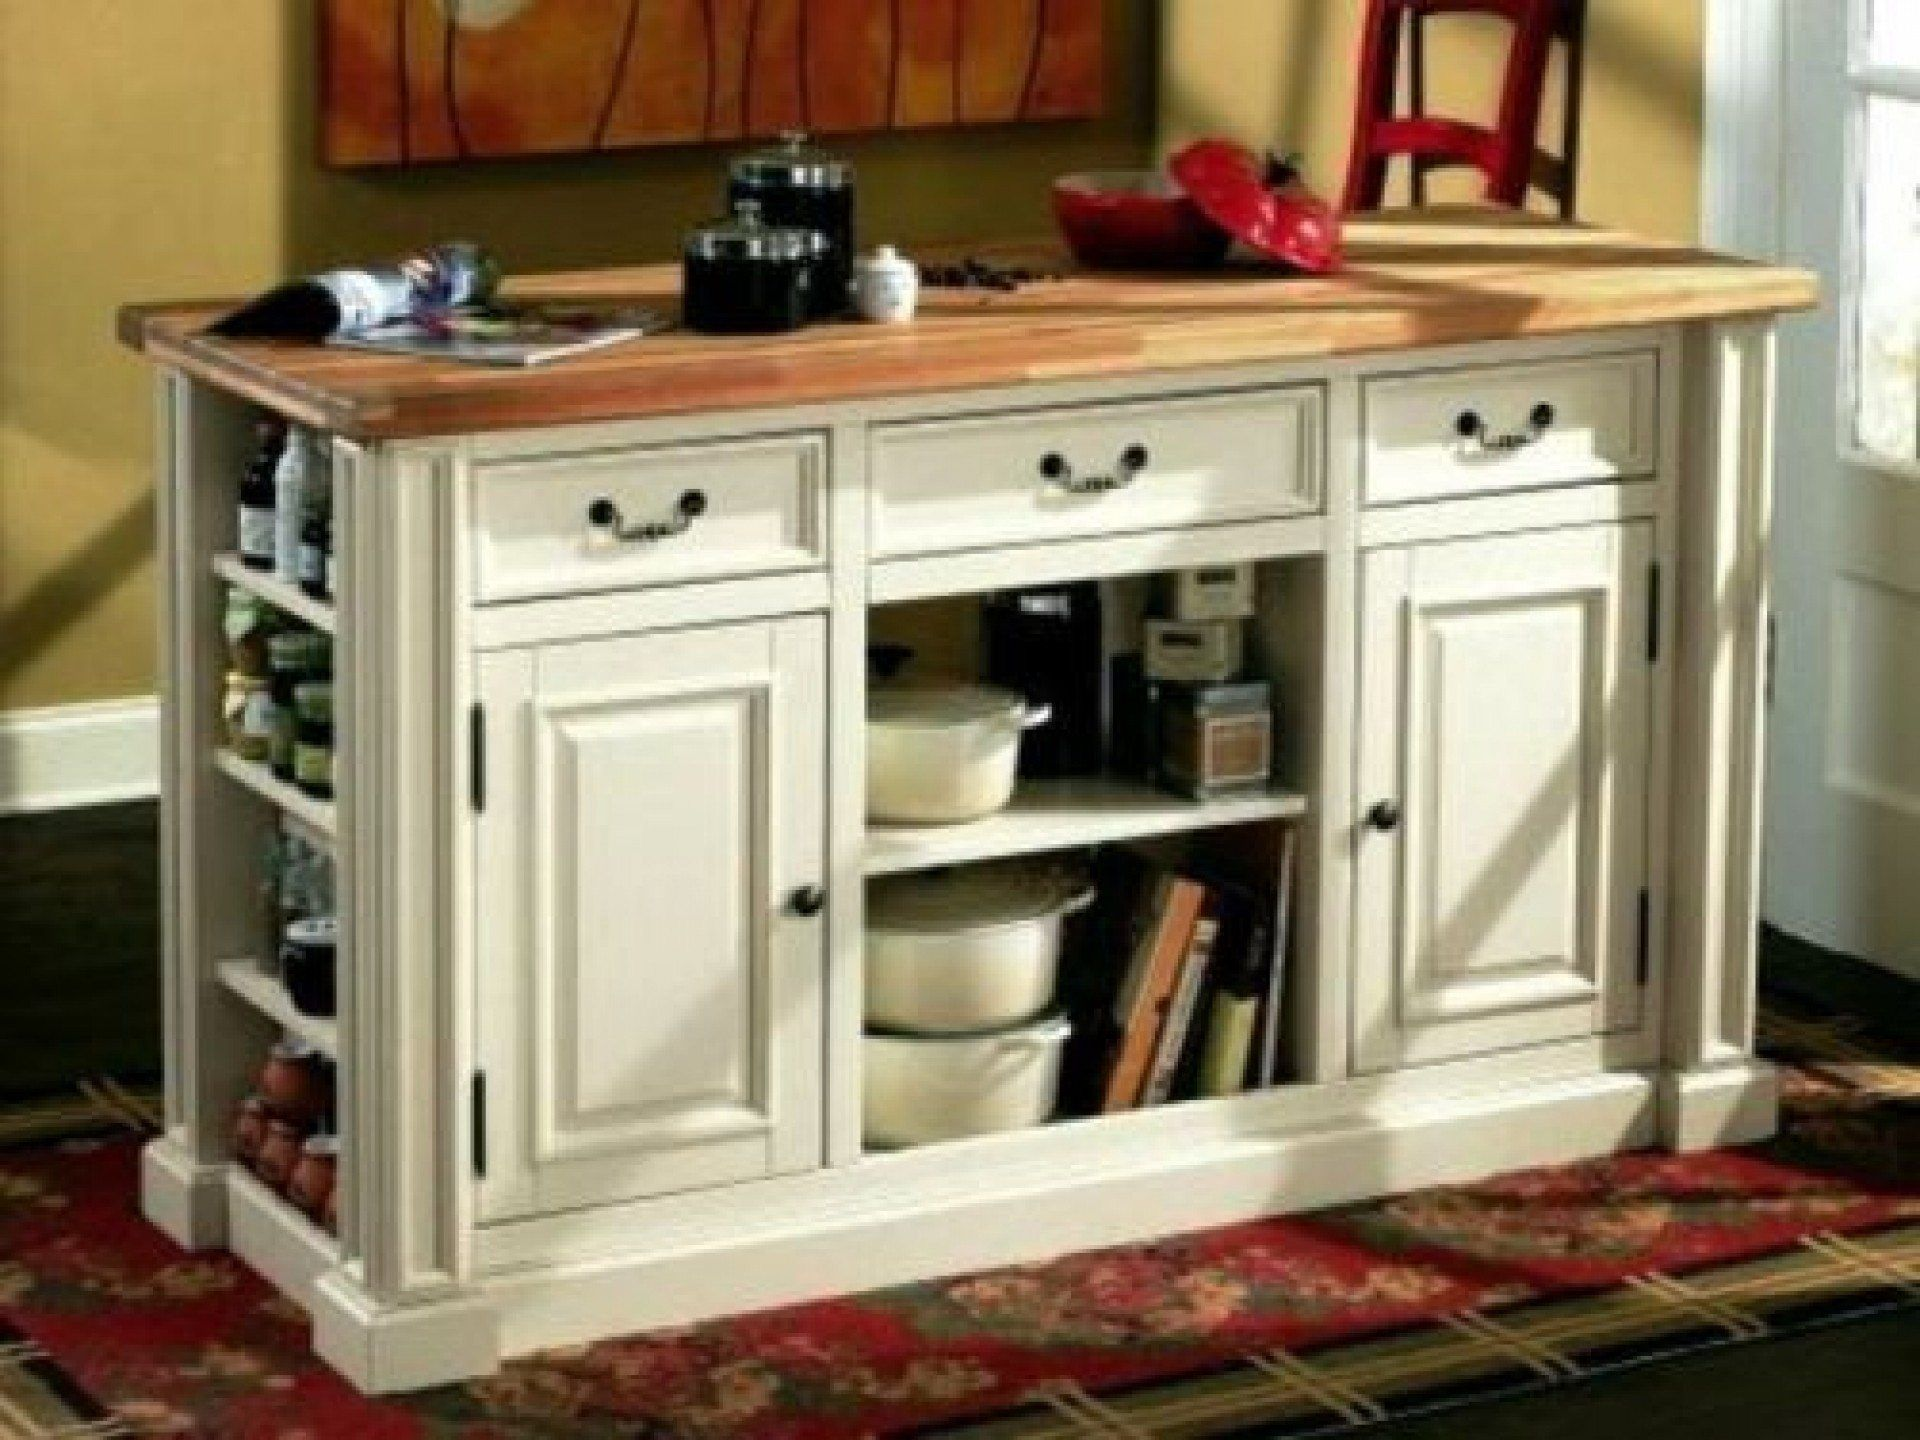 designs superb with kitchen wood doors freestanding gray tall glass storage cabinet framed pantry